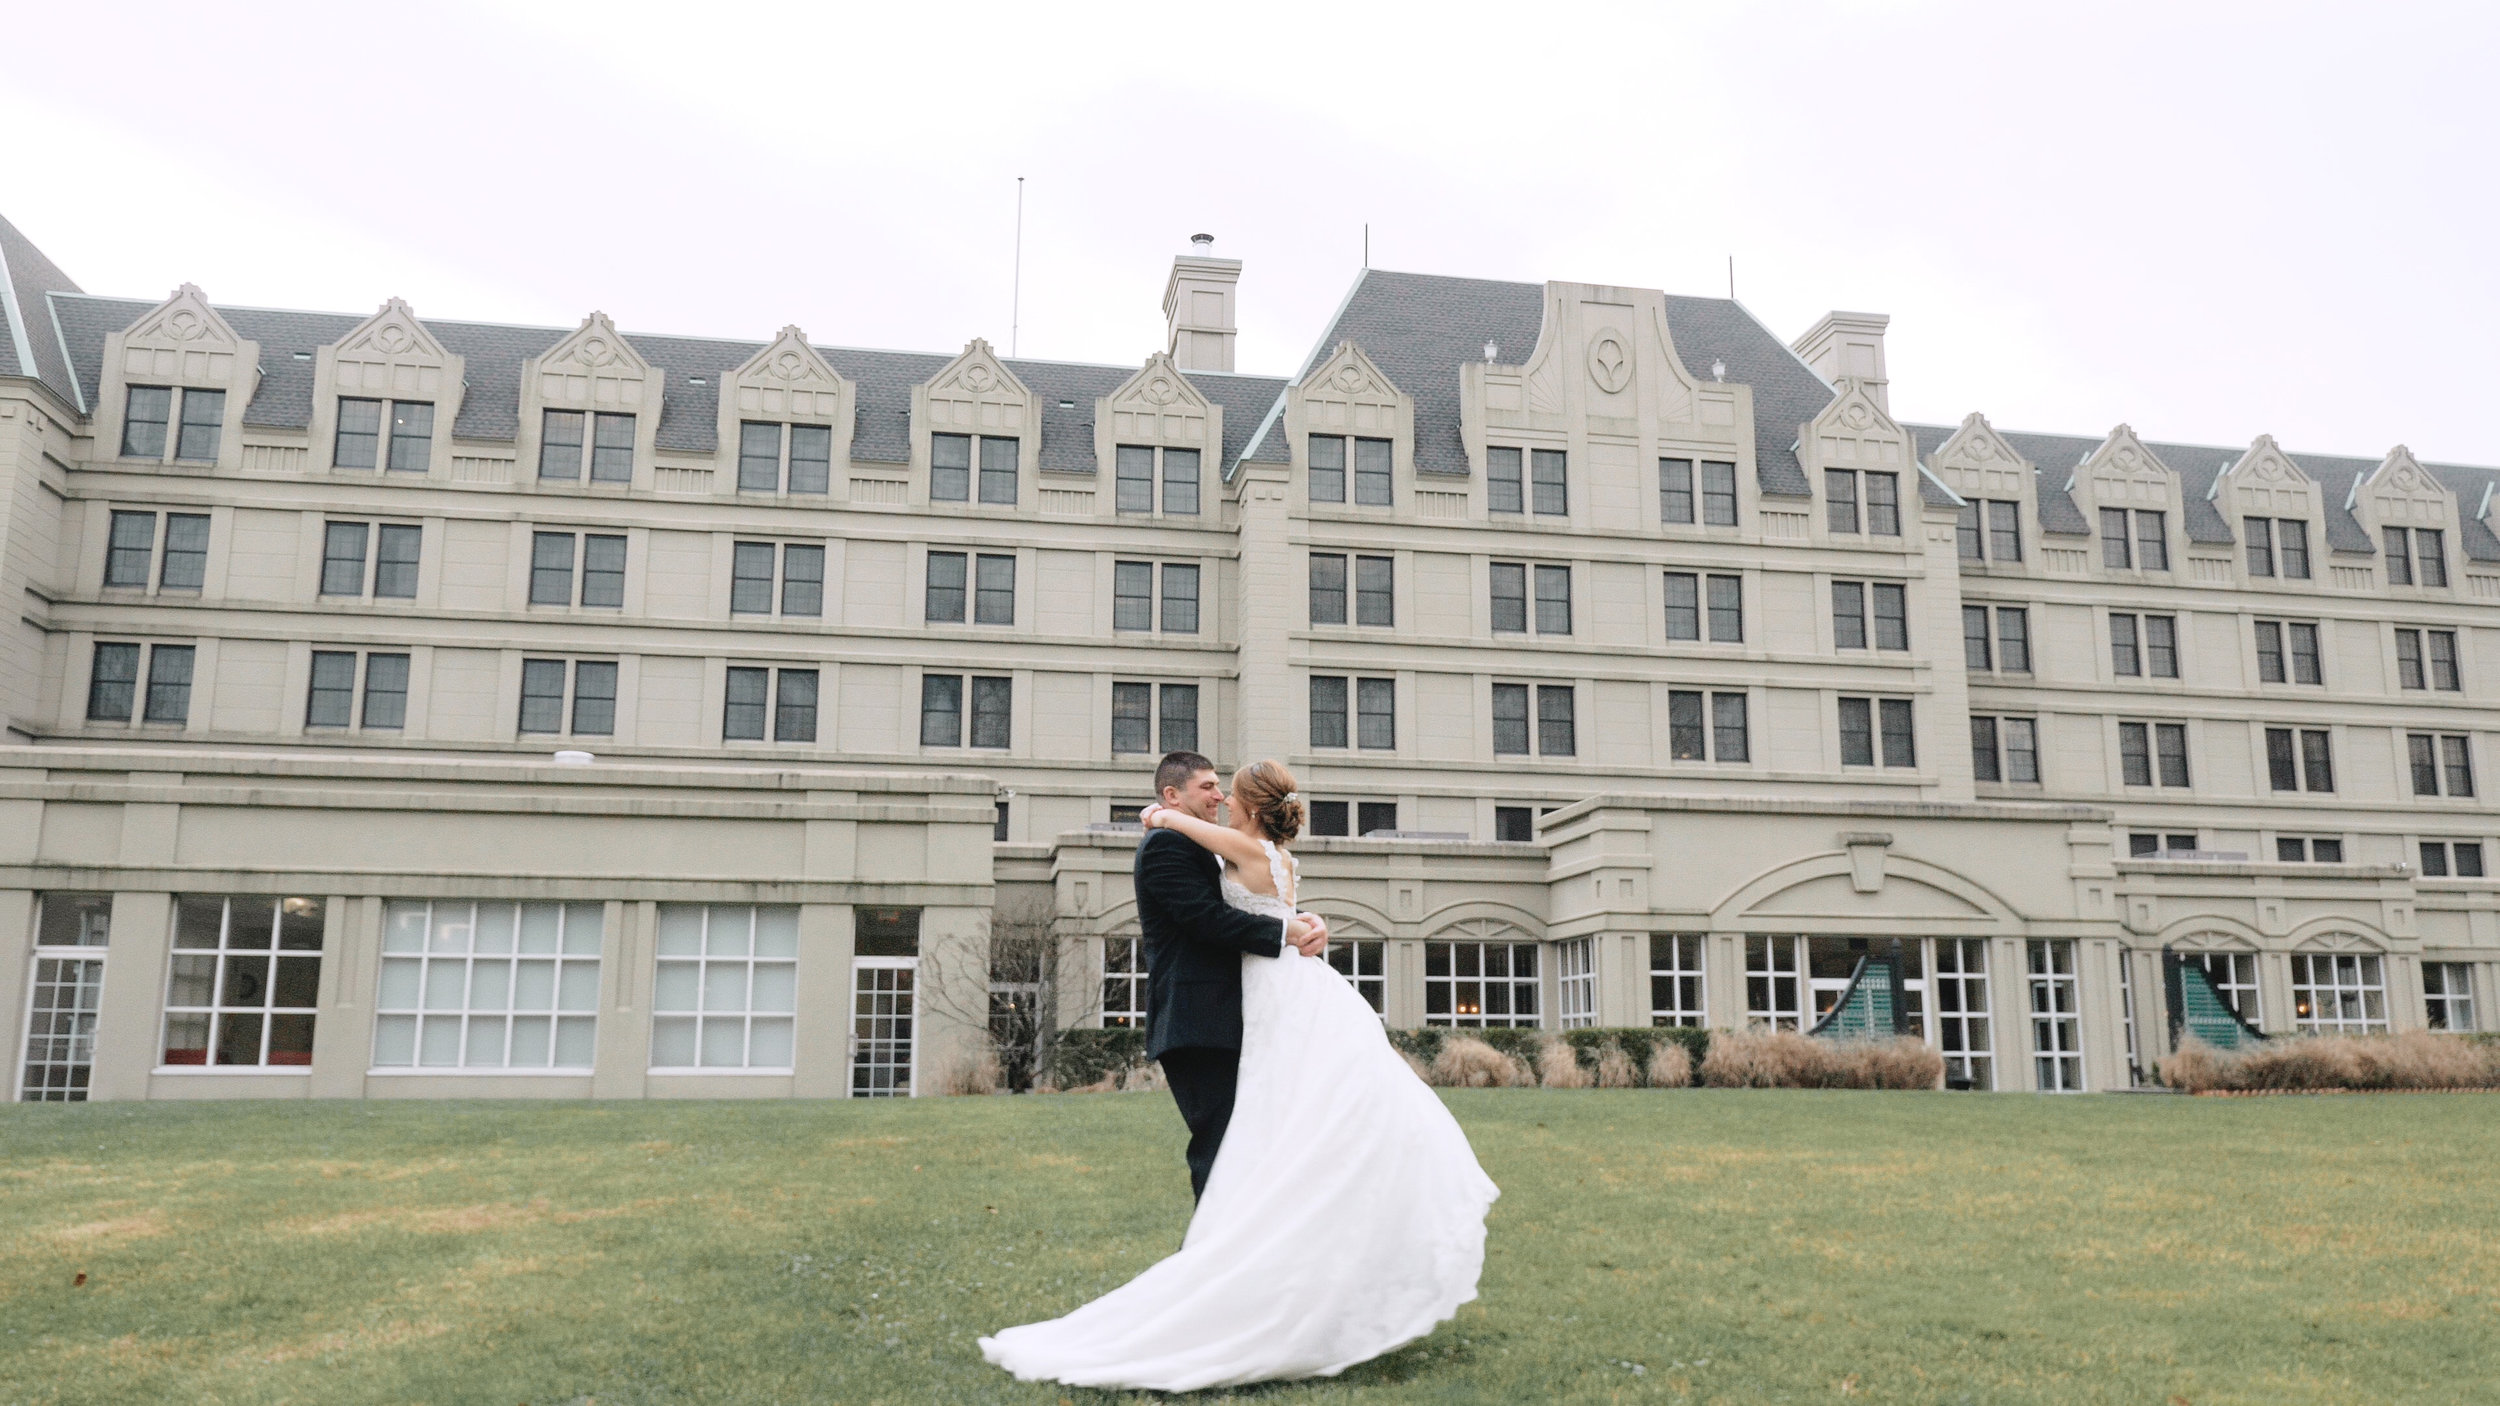 Tonemedia, NJ Wedding Videographer, NJ Wedding Videopgraphy, NJ Wedding Video